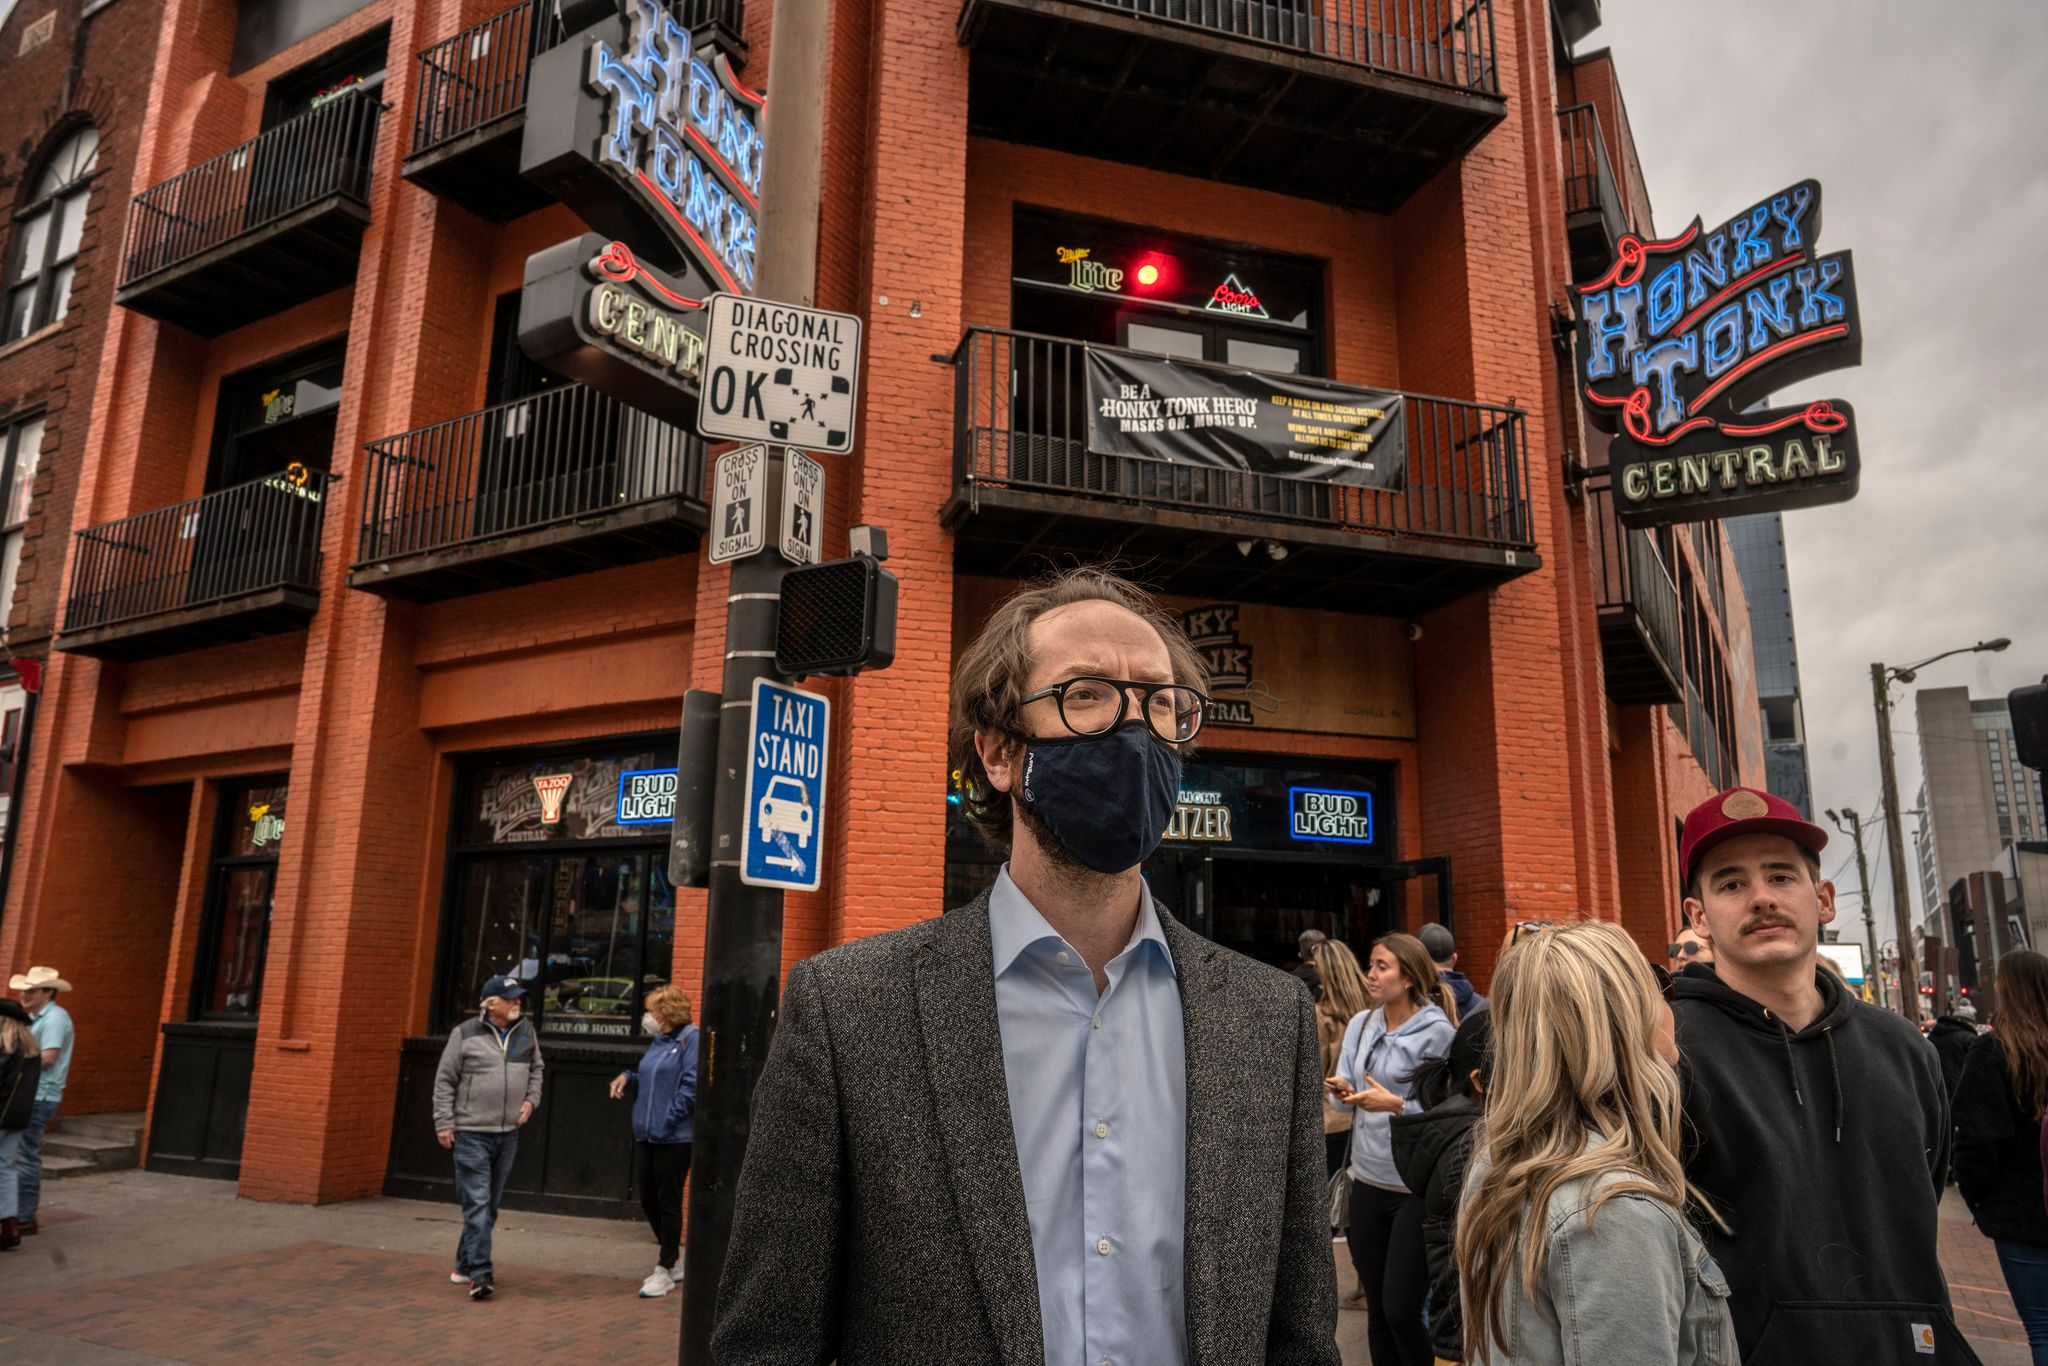 Councilmember Freddie O'Connell in front of Honky Tonk Central, a multi-story bar on Lower Broadway's tourist district, part of O'Connell's diverse district. (Photo: John Partipilo)